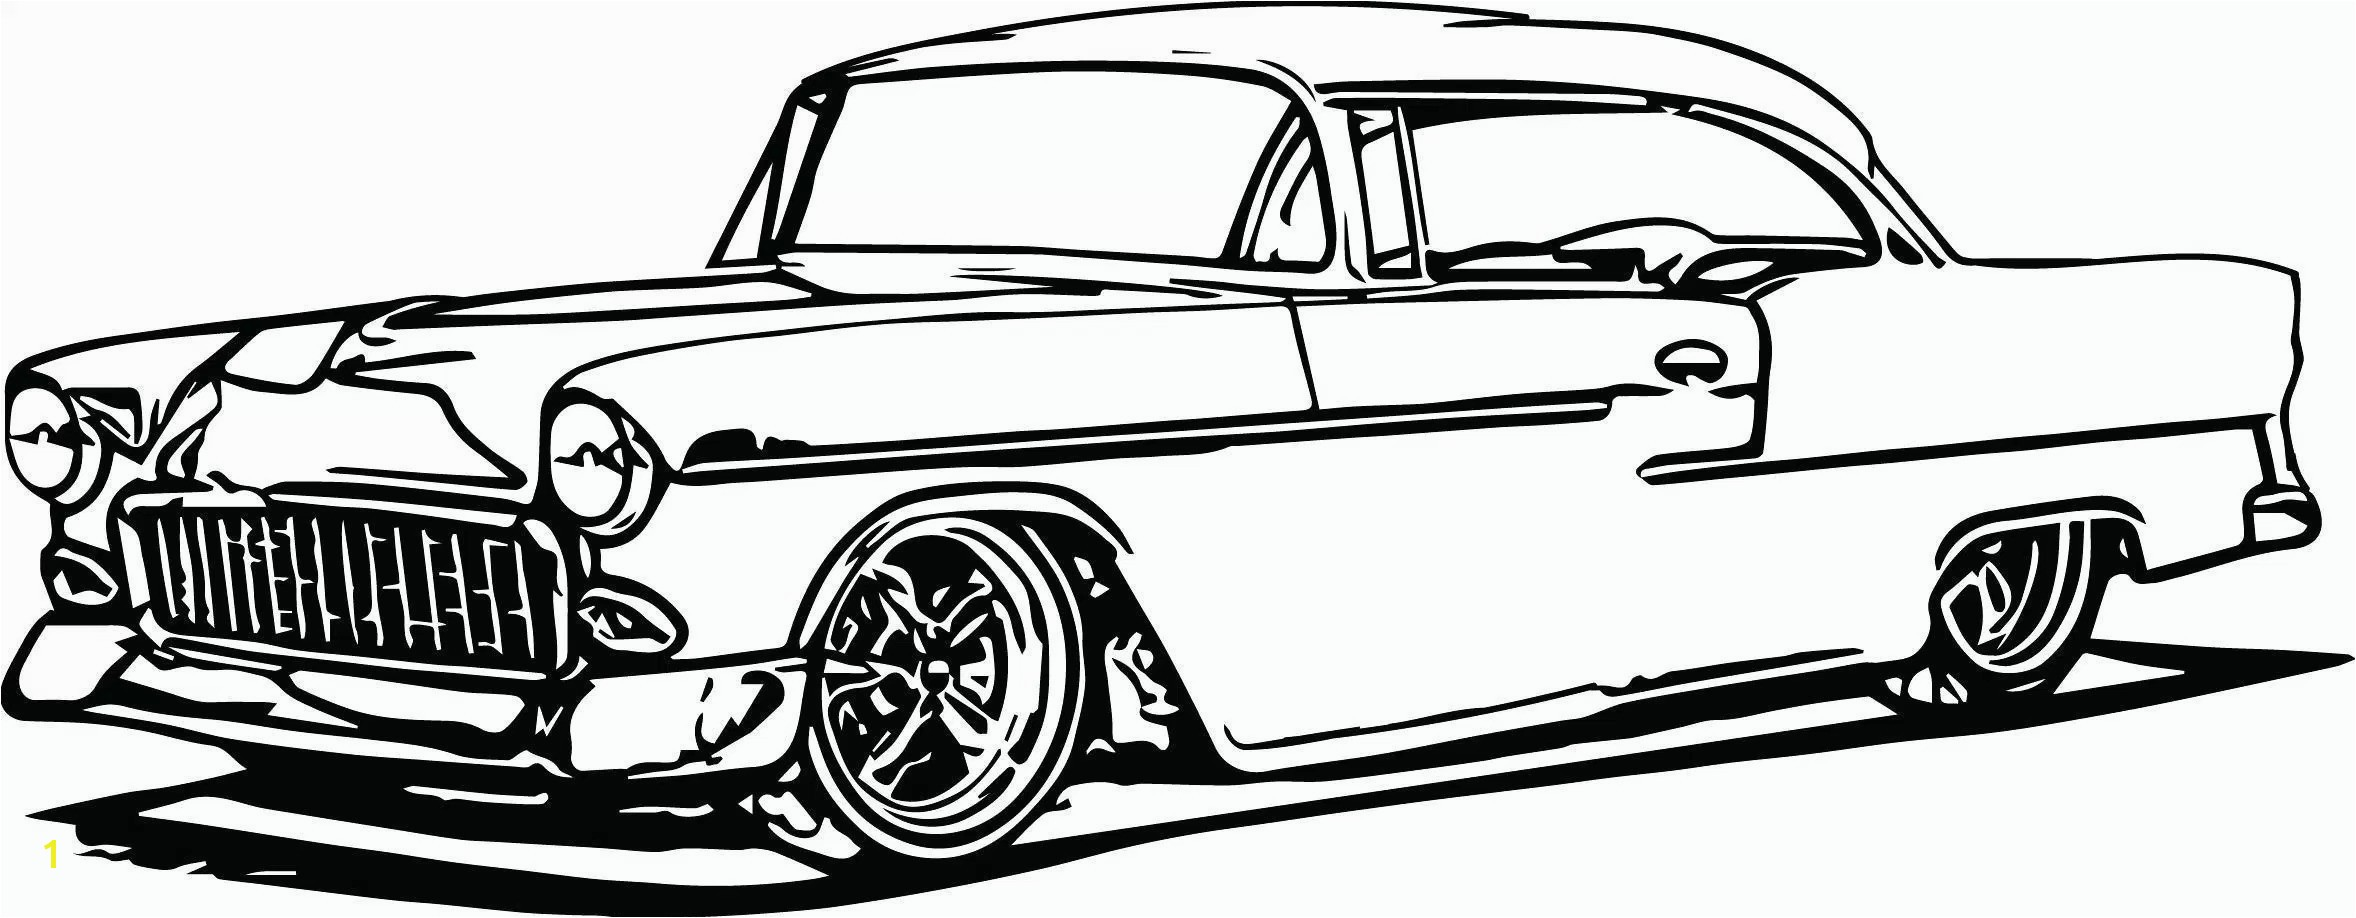 Coloring Pages Muscle Cars Muscle Car Coloring Pages Save Cars Coloring Books Inspirationa